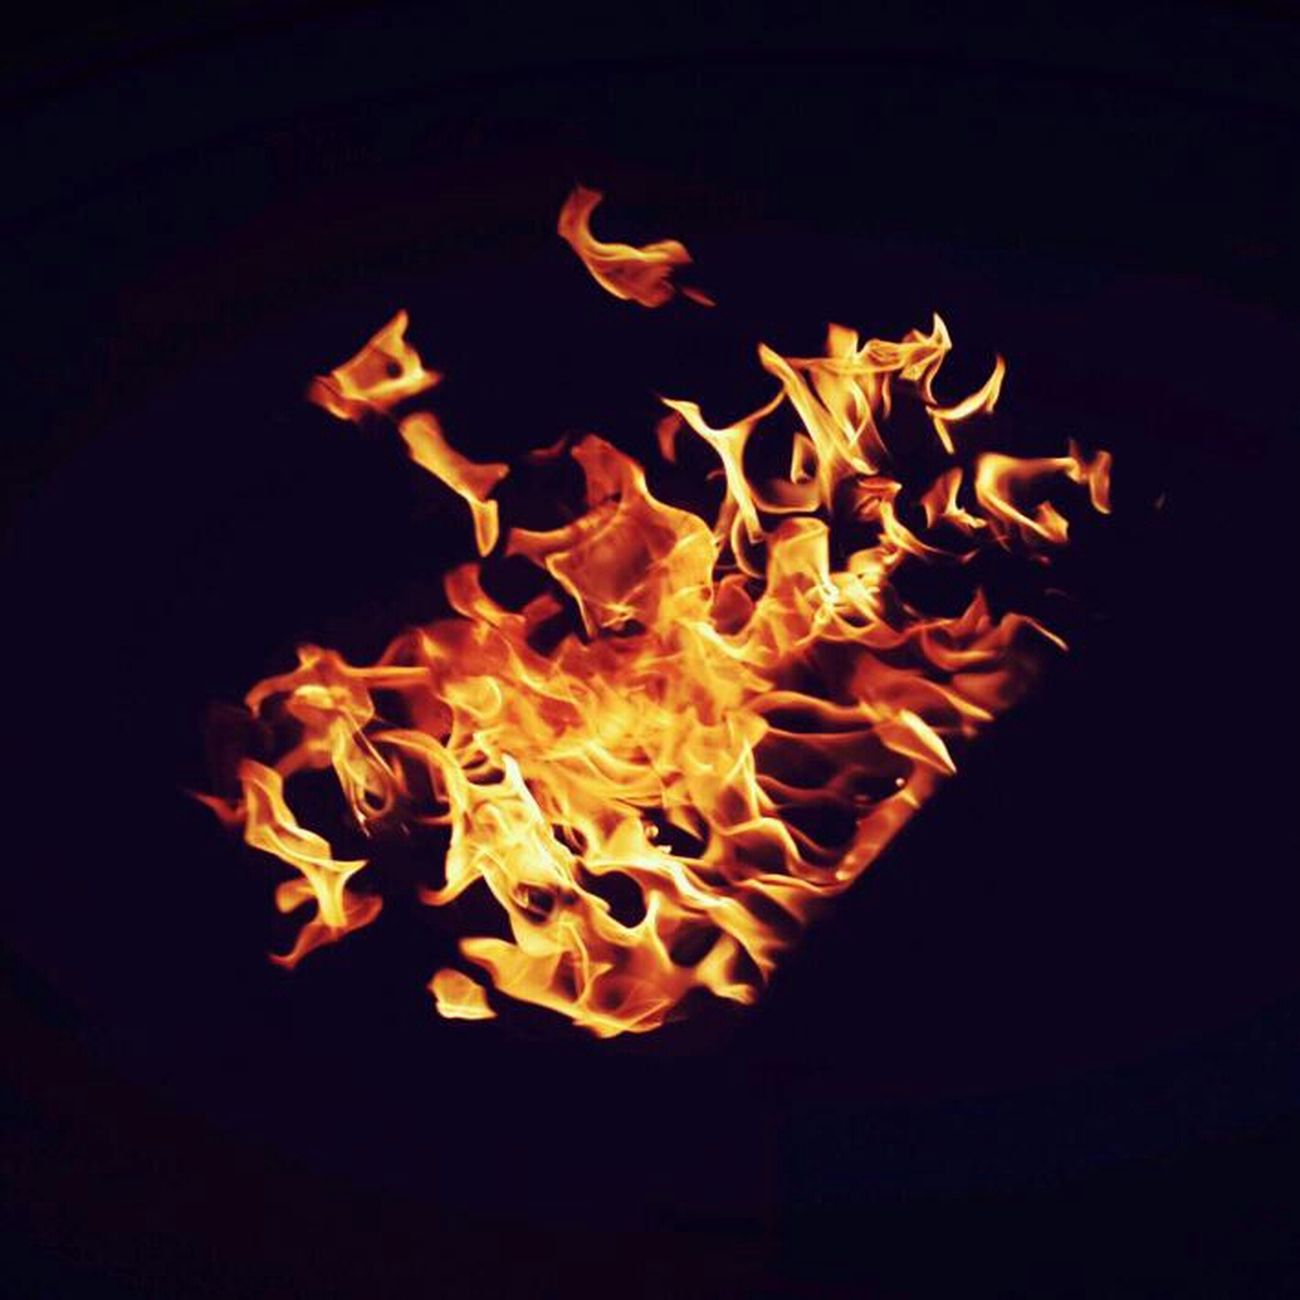 Sea تصويري  Fire Taking Photos